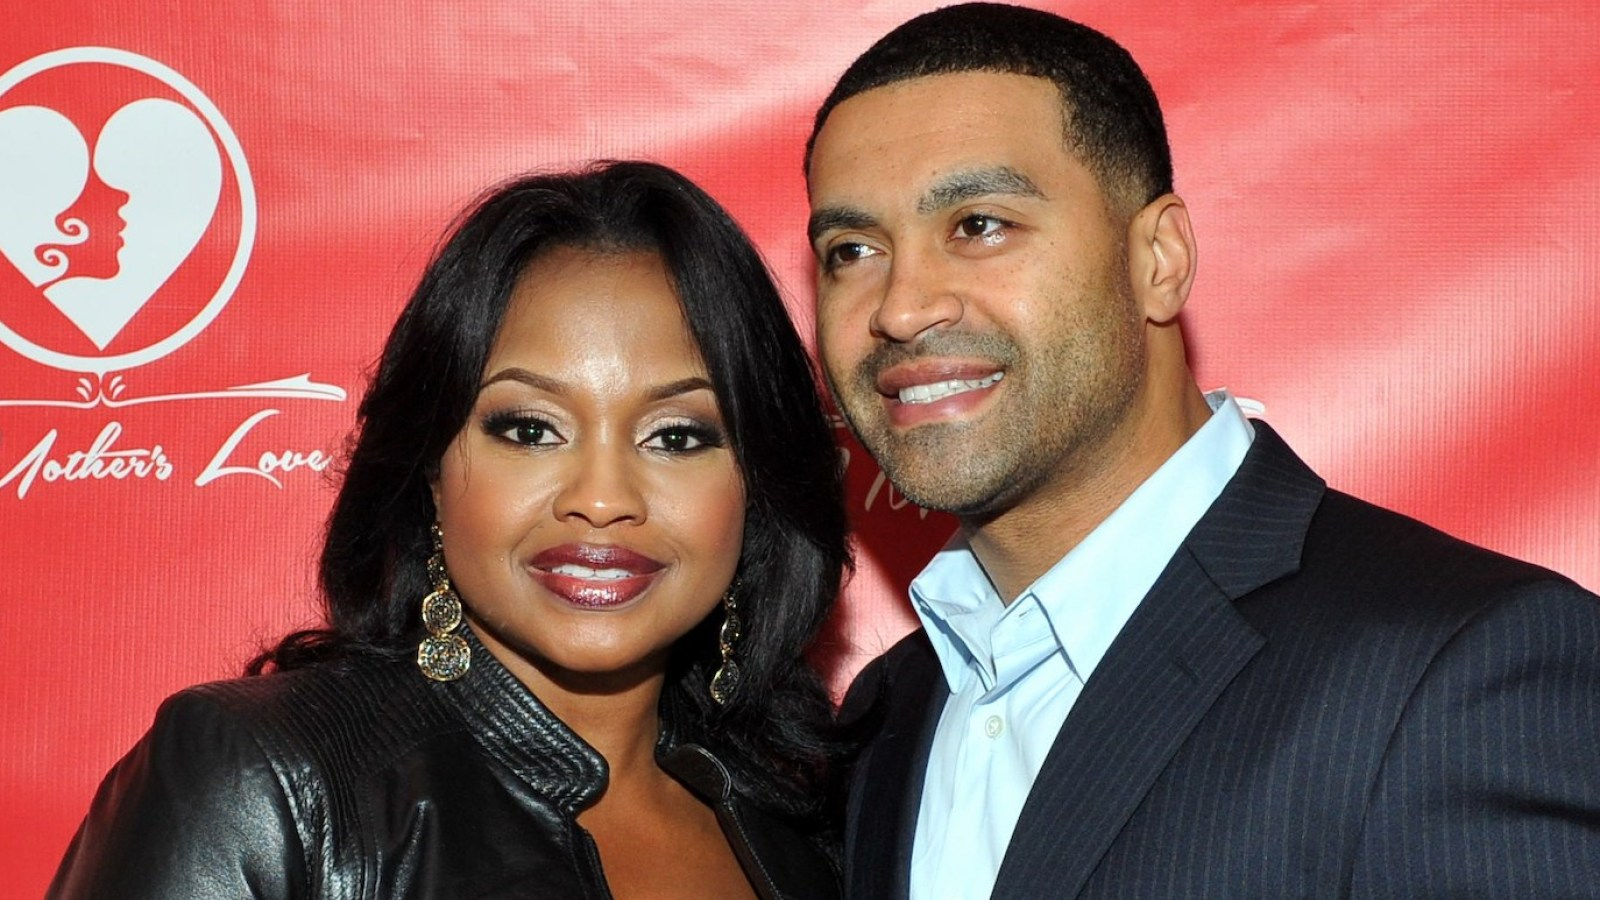 phaedra-parks-ex-husband-apollo-nida-was-reportedly-released-from-prison